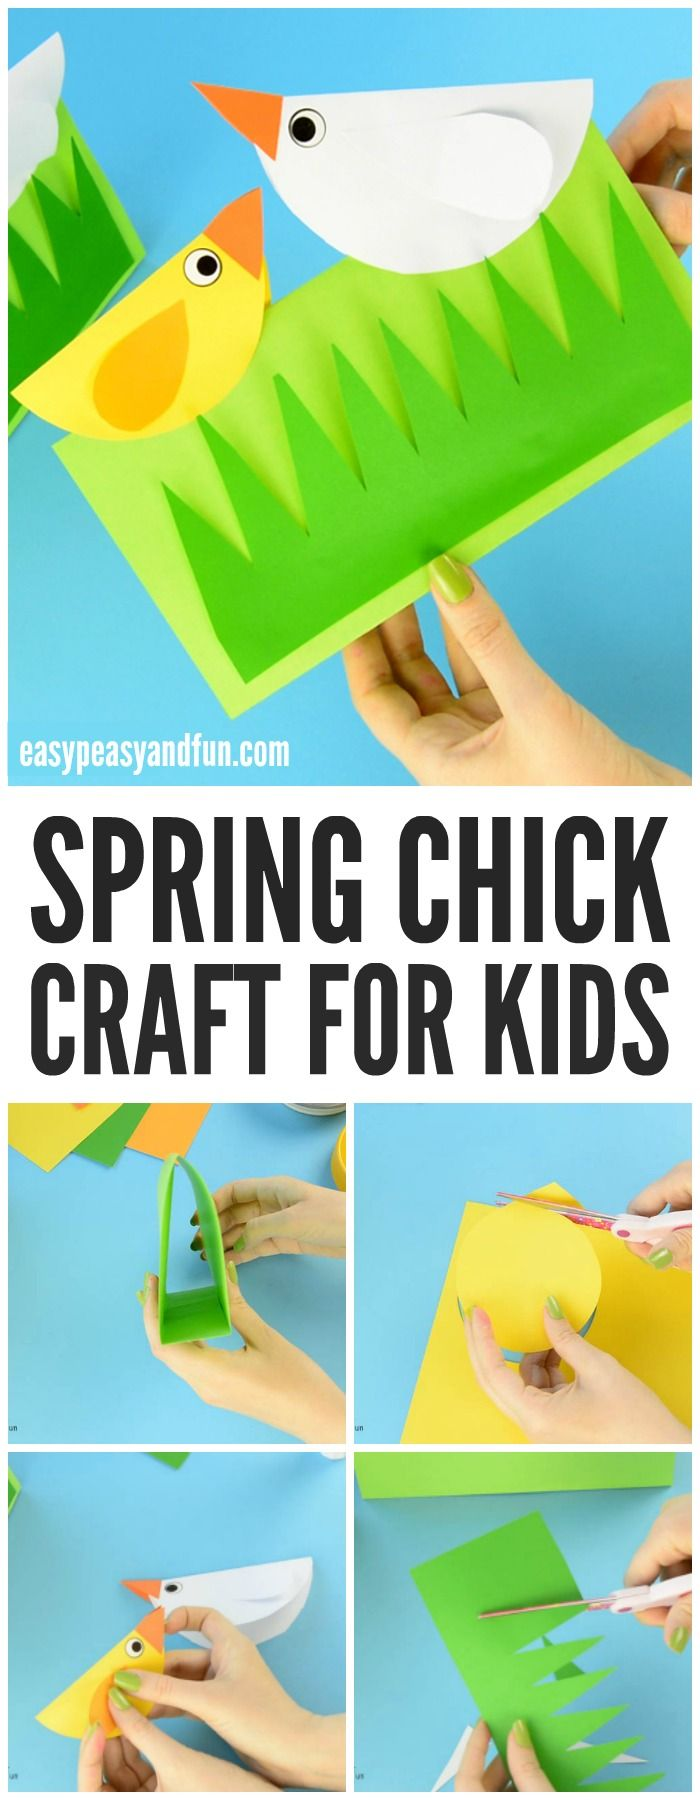 Spring Chick Craft! An adorable 3D craft for kids to make this spring!